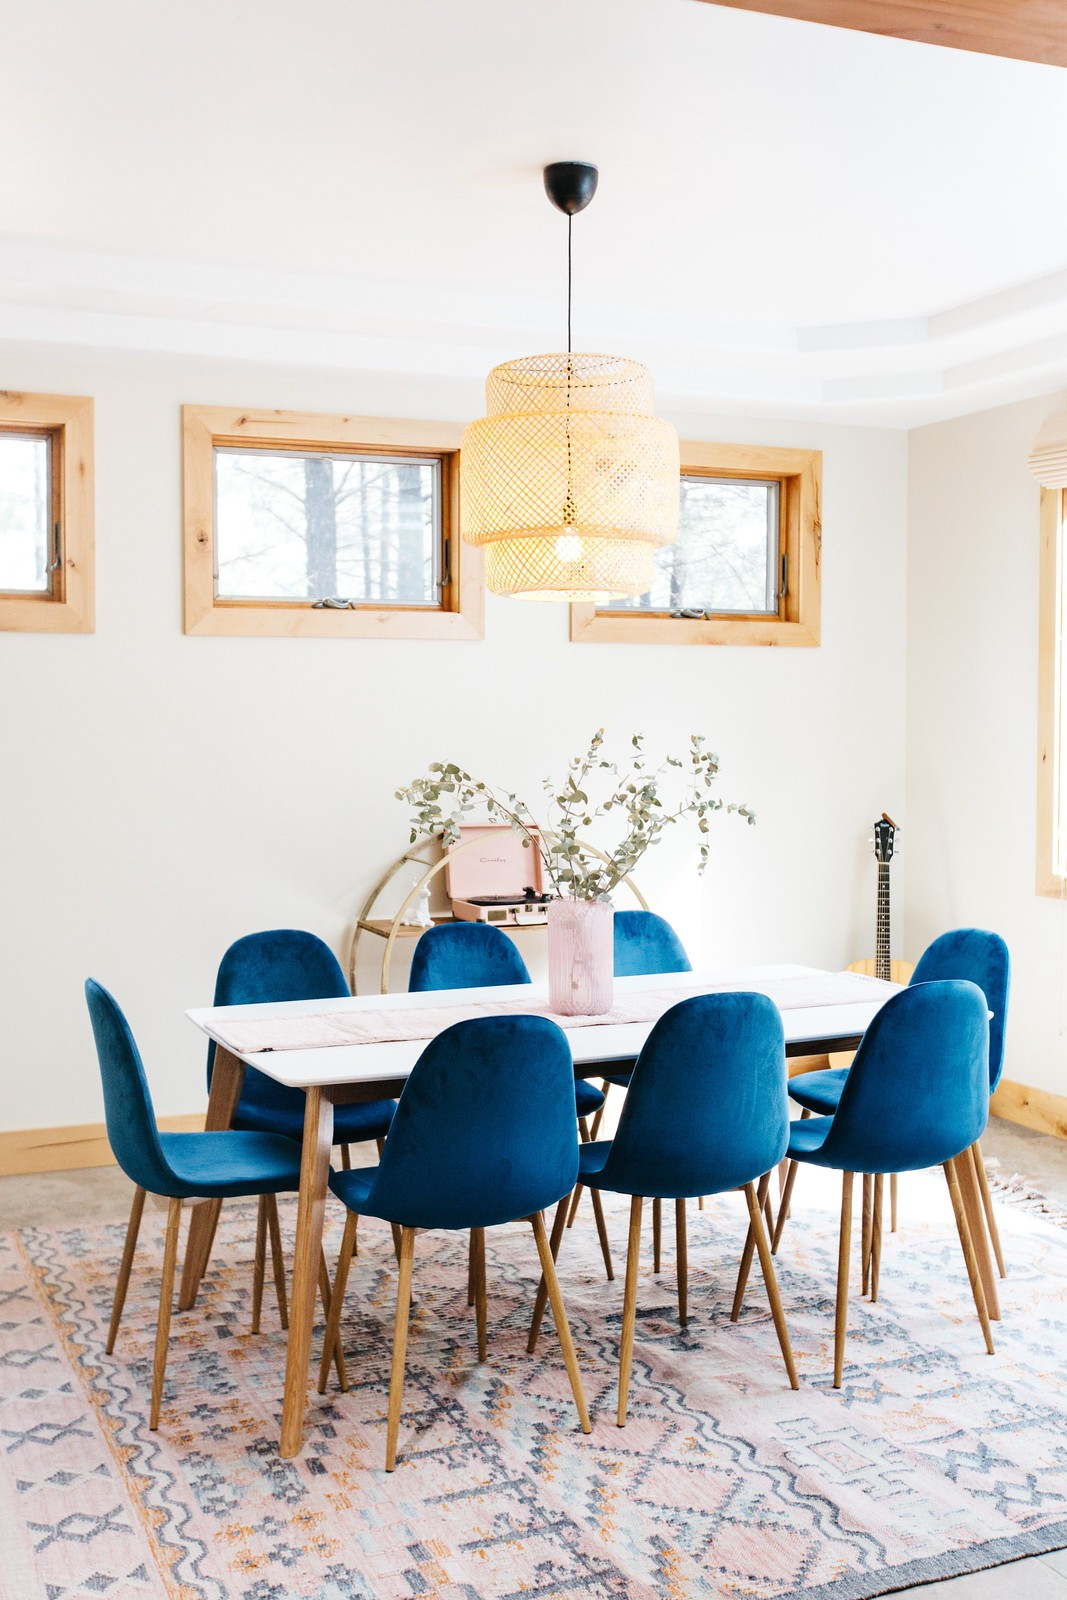 Blue Velvet Chairs | Velvet Dining Room Chairs | Velvet Dining Chairs | Dining Room Inspiration | Dining Room Ideas | Dining Room Decor | Straw Ikea Chandelier Light Fixture